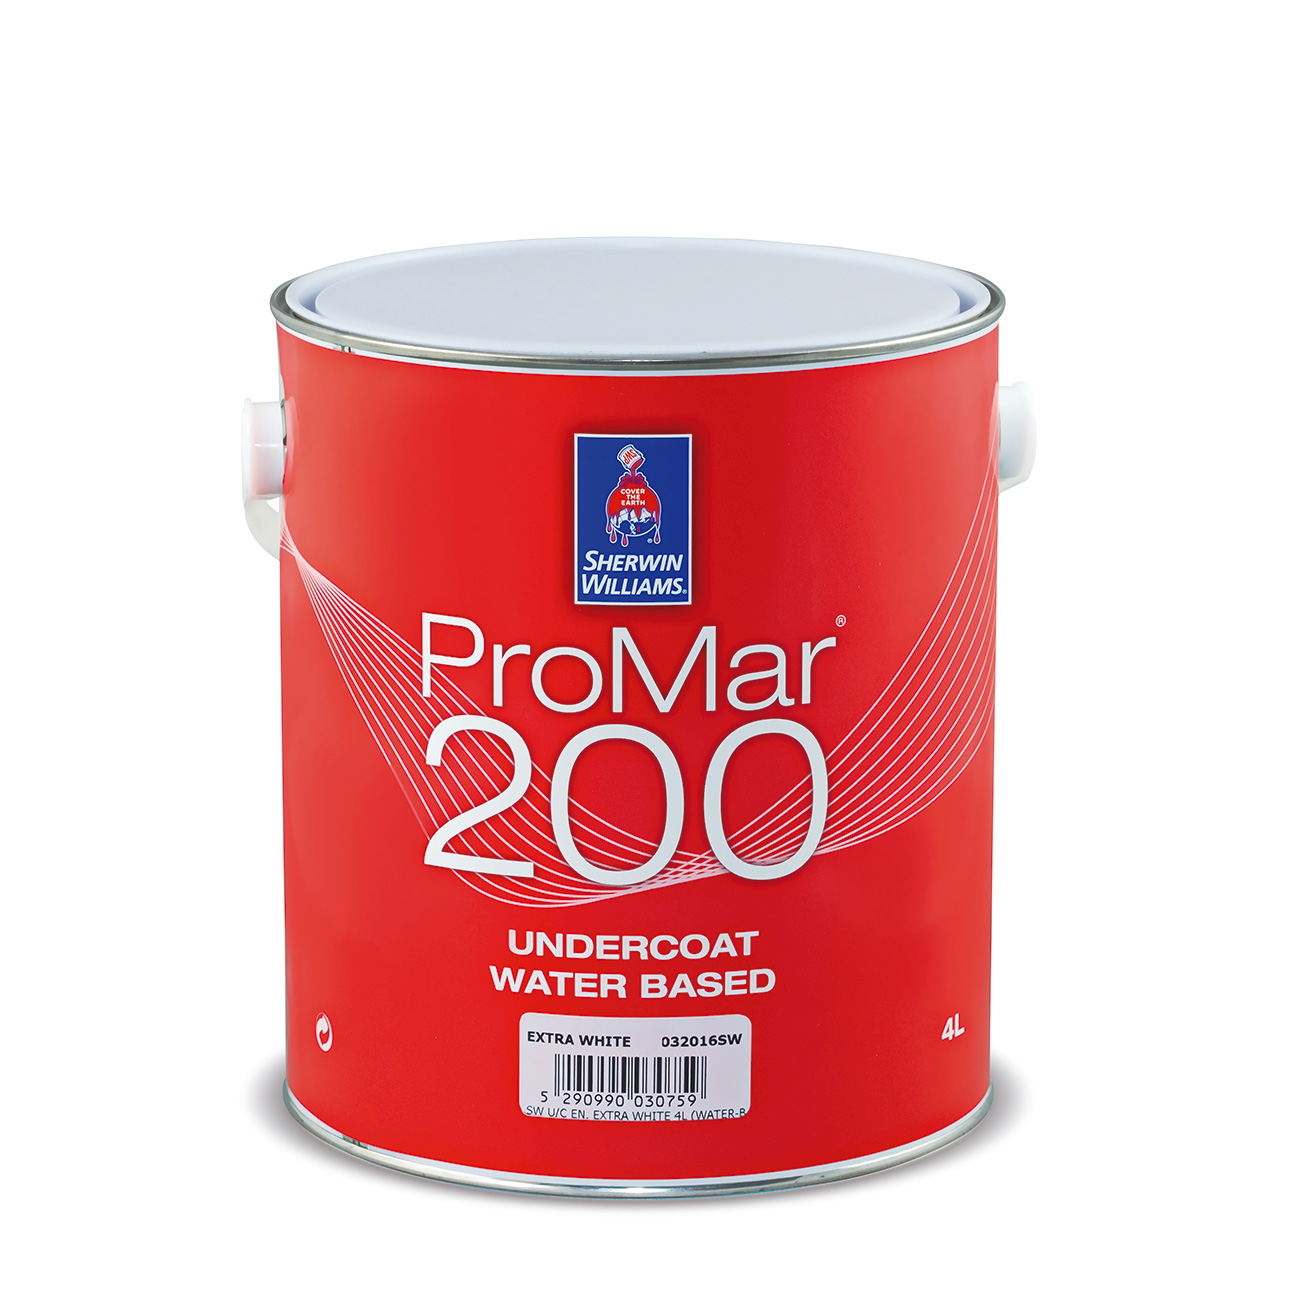 SHERWIN-WILLIAMS® PROMAR® 200 UNDERCOAT WATER BASED EXTRA WHITE 4L